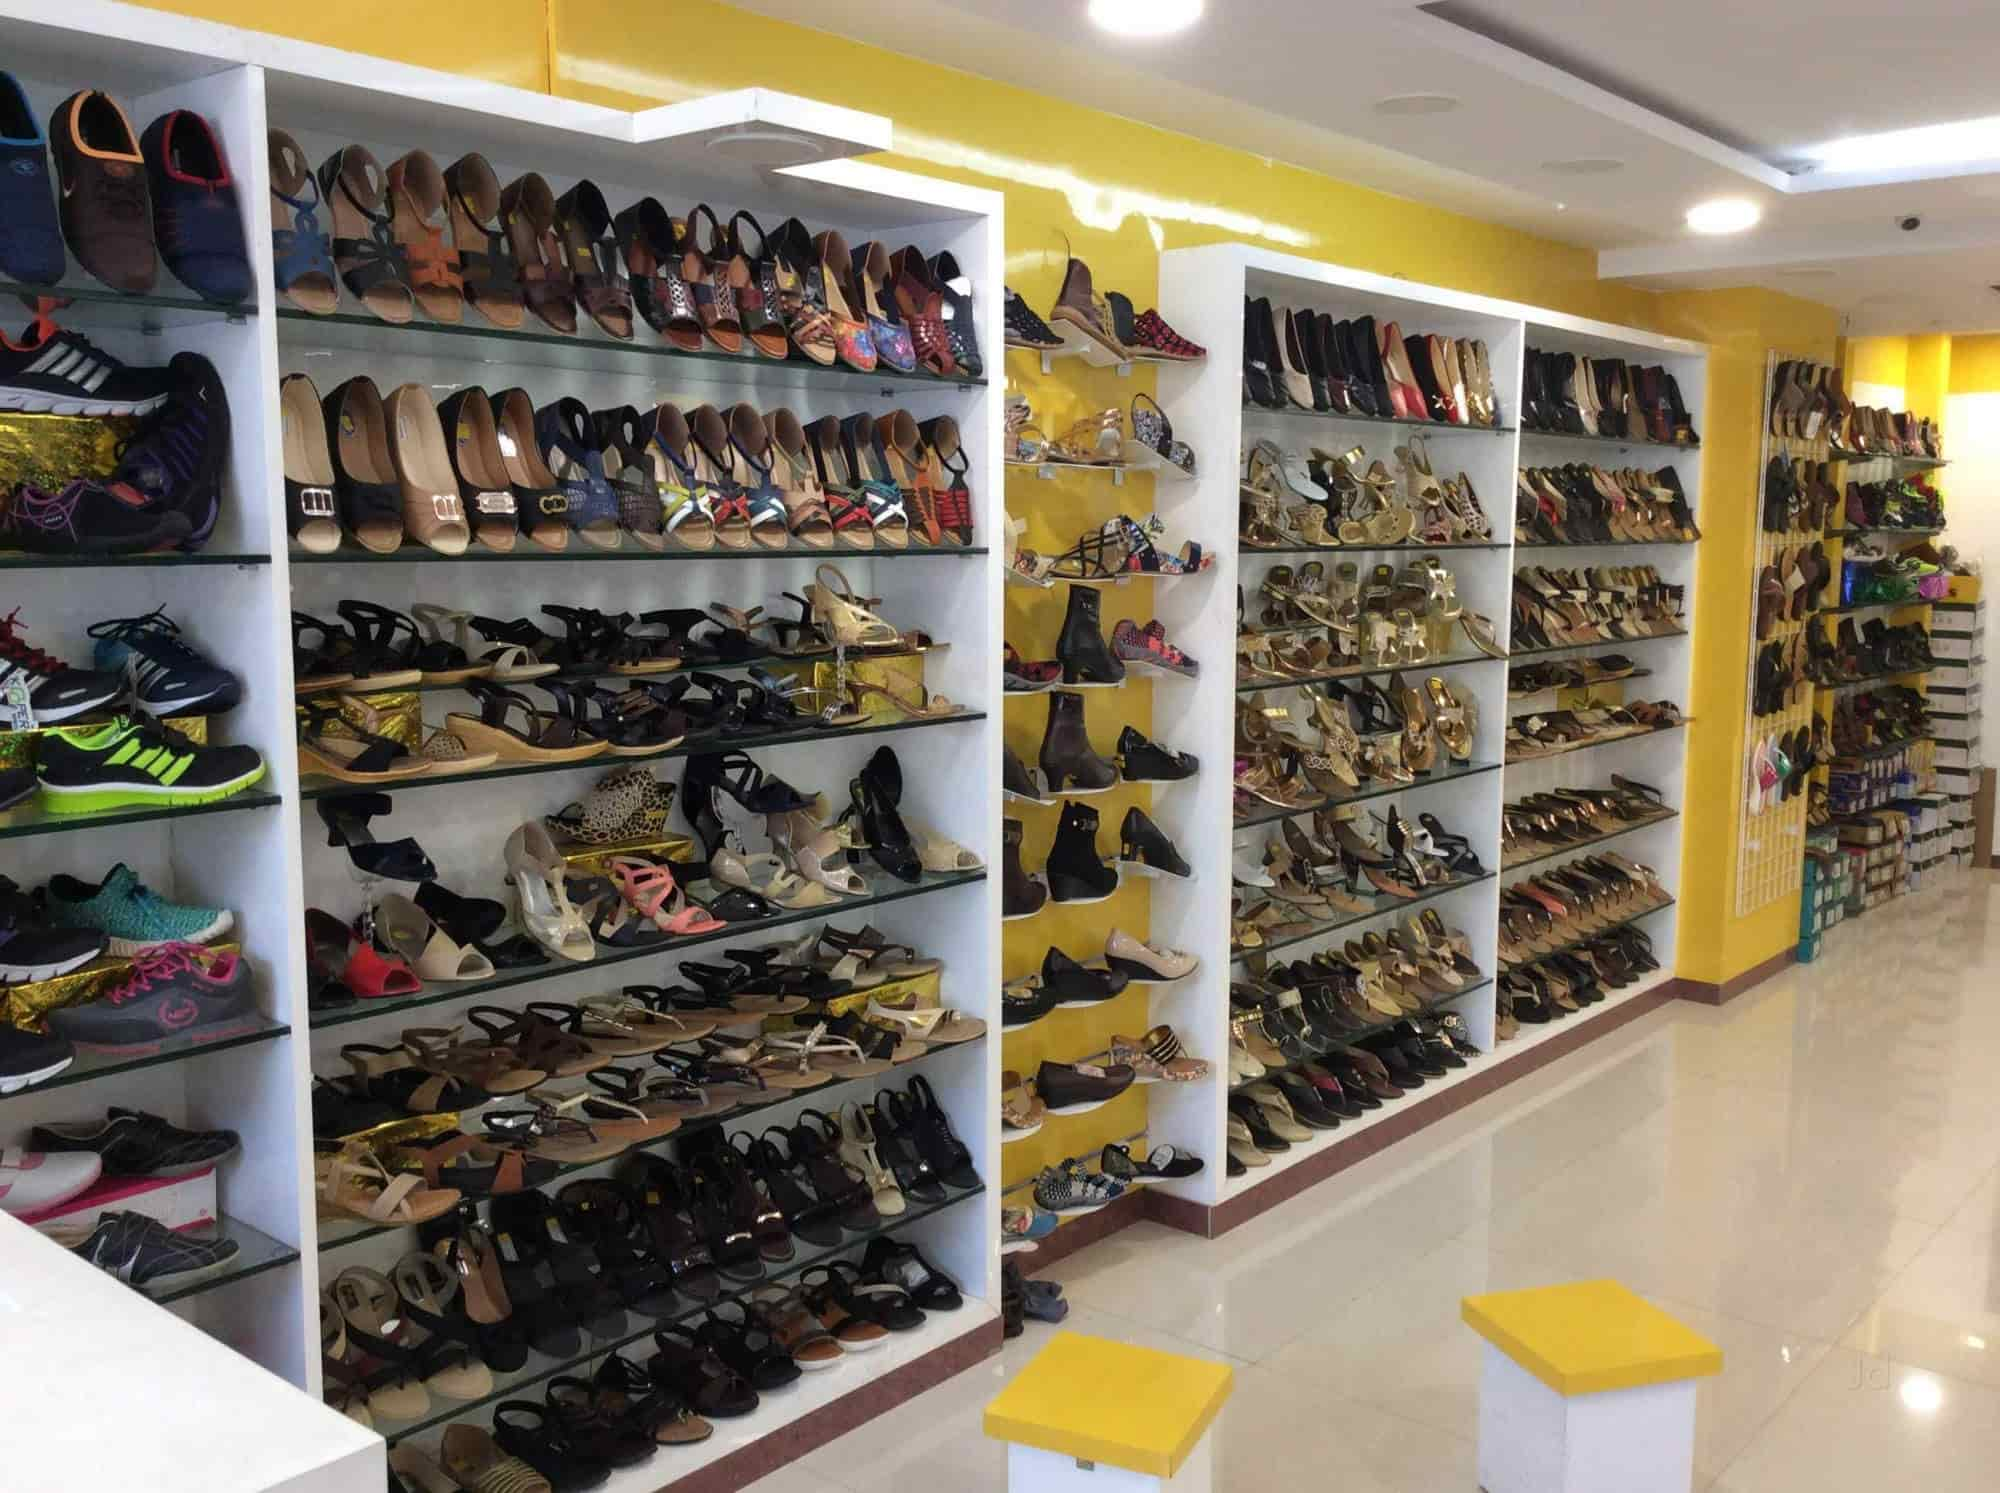 Mohak Footwear, Budhwar Peth - Mohak Footware - Shoe Dealers in Pune -  Justdial